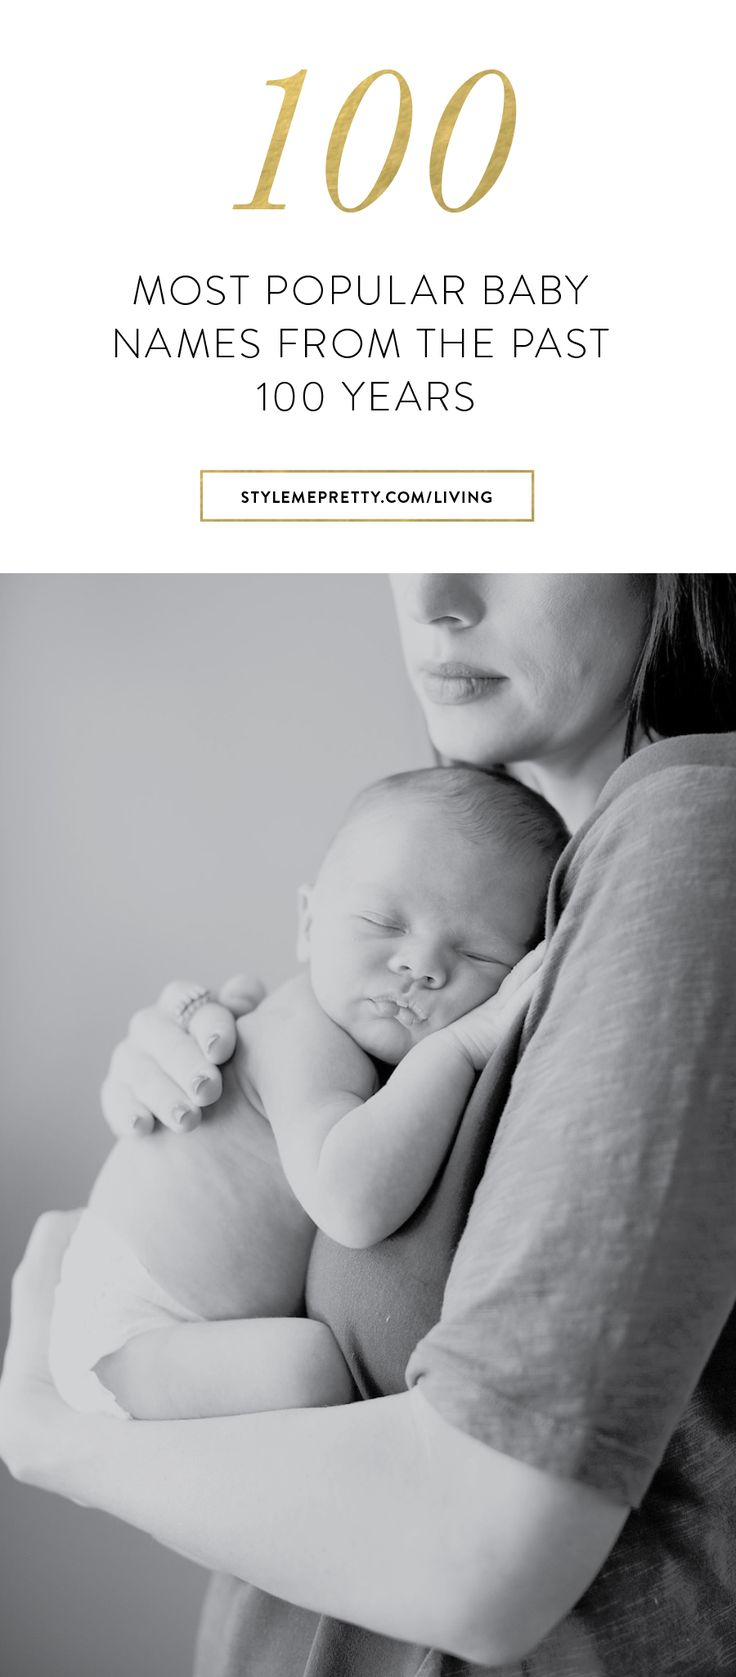 100 of the most popular baby names from the past 100 years. Did you name make the list? http://www.stylemepretty.com/living/2016/07/27/100-most-popular-baby-names/?ncid=txtlnkussmp00000006